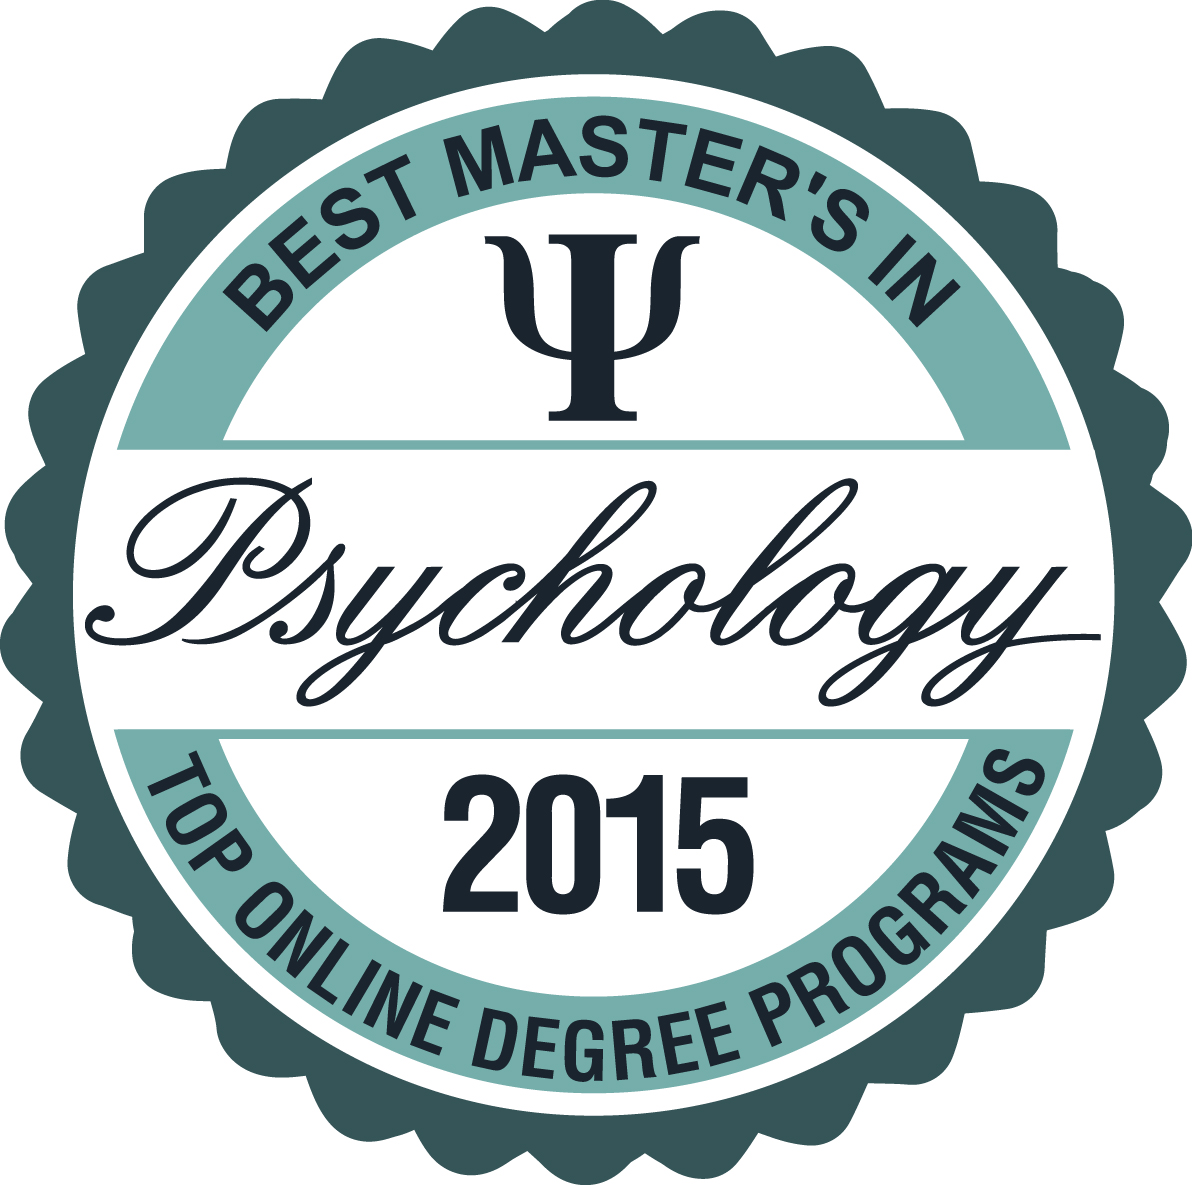 Top 15 Online Masters In Counseling Degree Programs 2015 Best